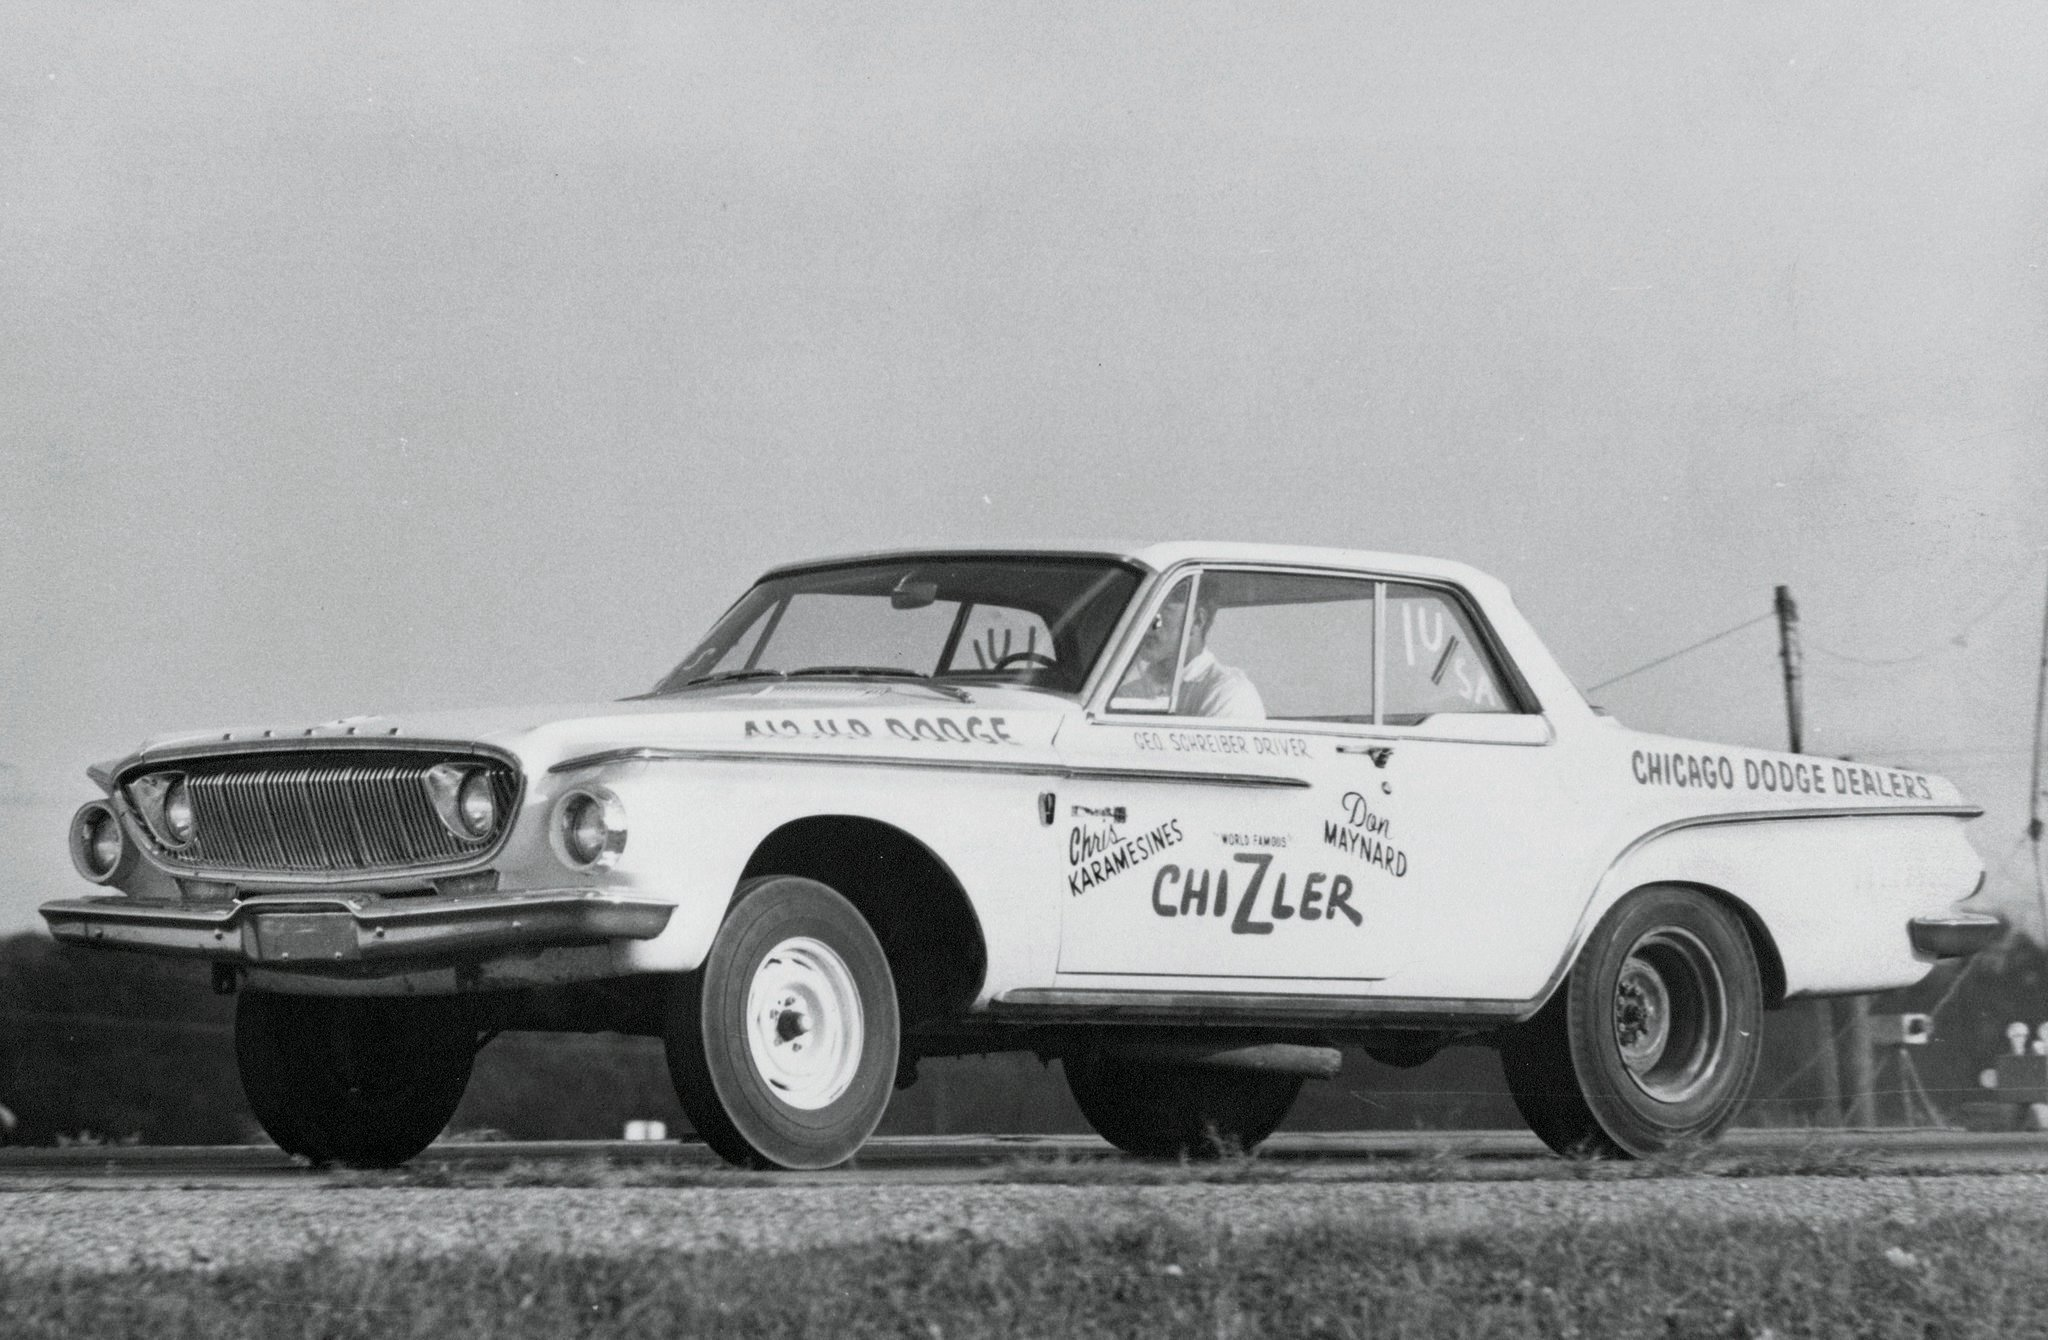 The Greek and Maynard put together a Super Stock Dodge for the 1962 season and match-raced it at Midwest events, where guys named Beswick and Minick were making door-slammer shows a drawing card. George Schreiber drove the car most often, but the Greek took a few turns behind the wheel as well.